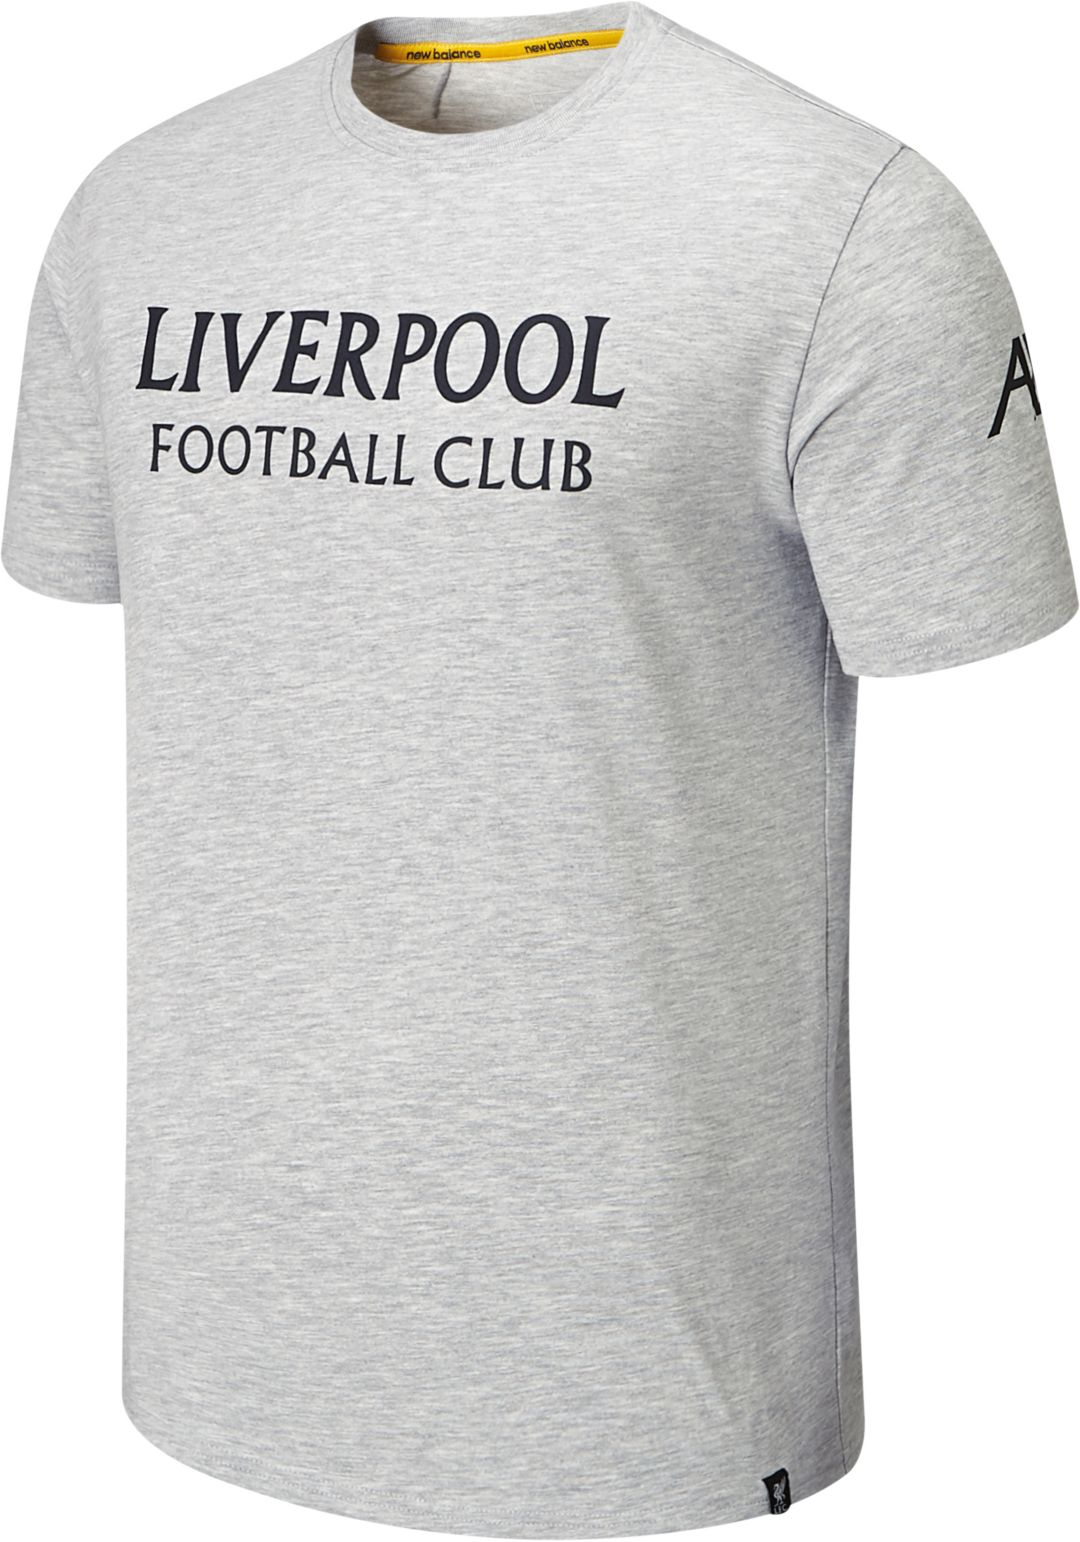 New Balance Youth Liverpool FC Travel Graphic Heather Grey T Shirt